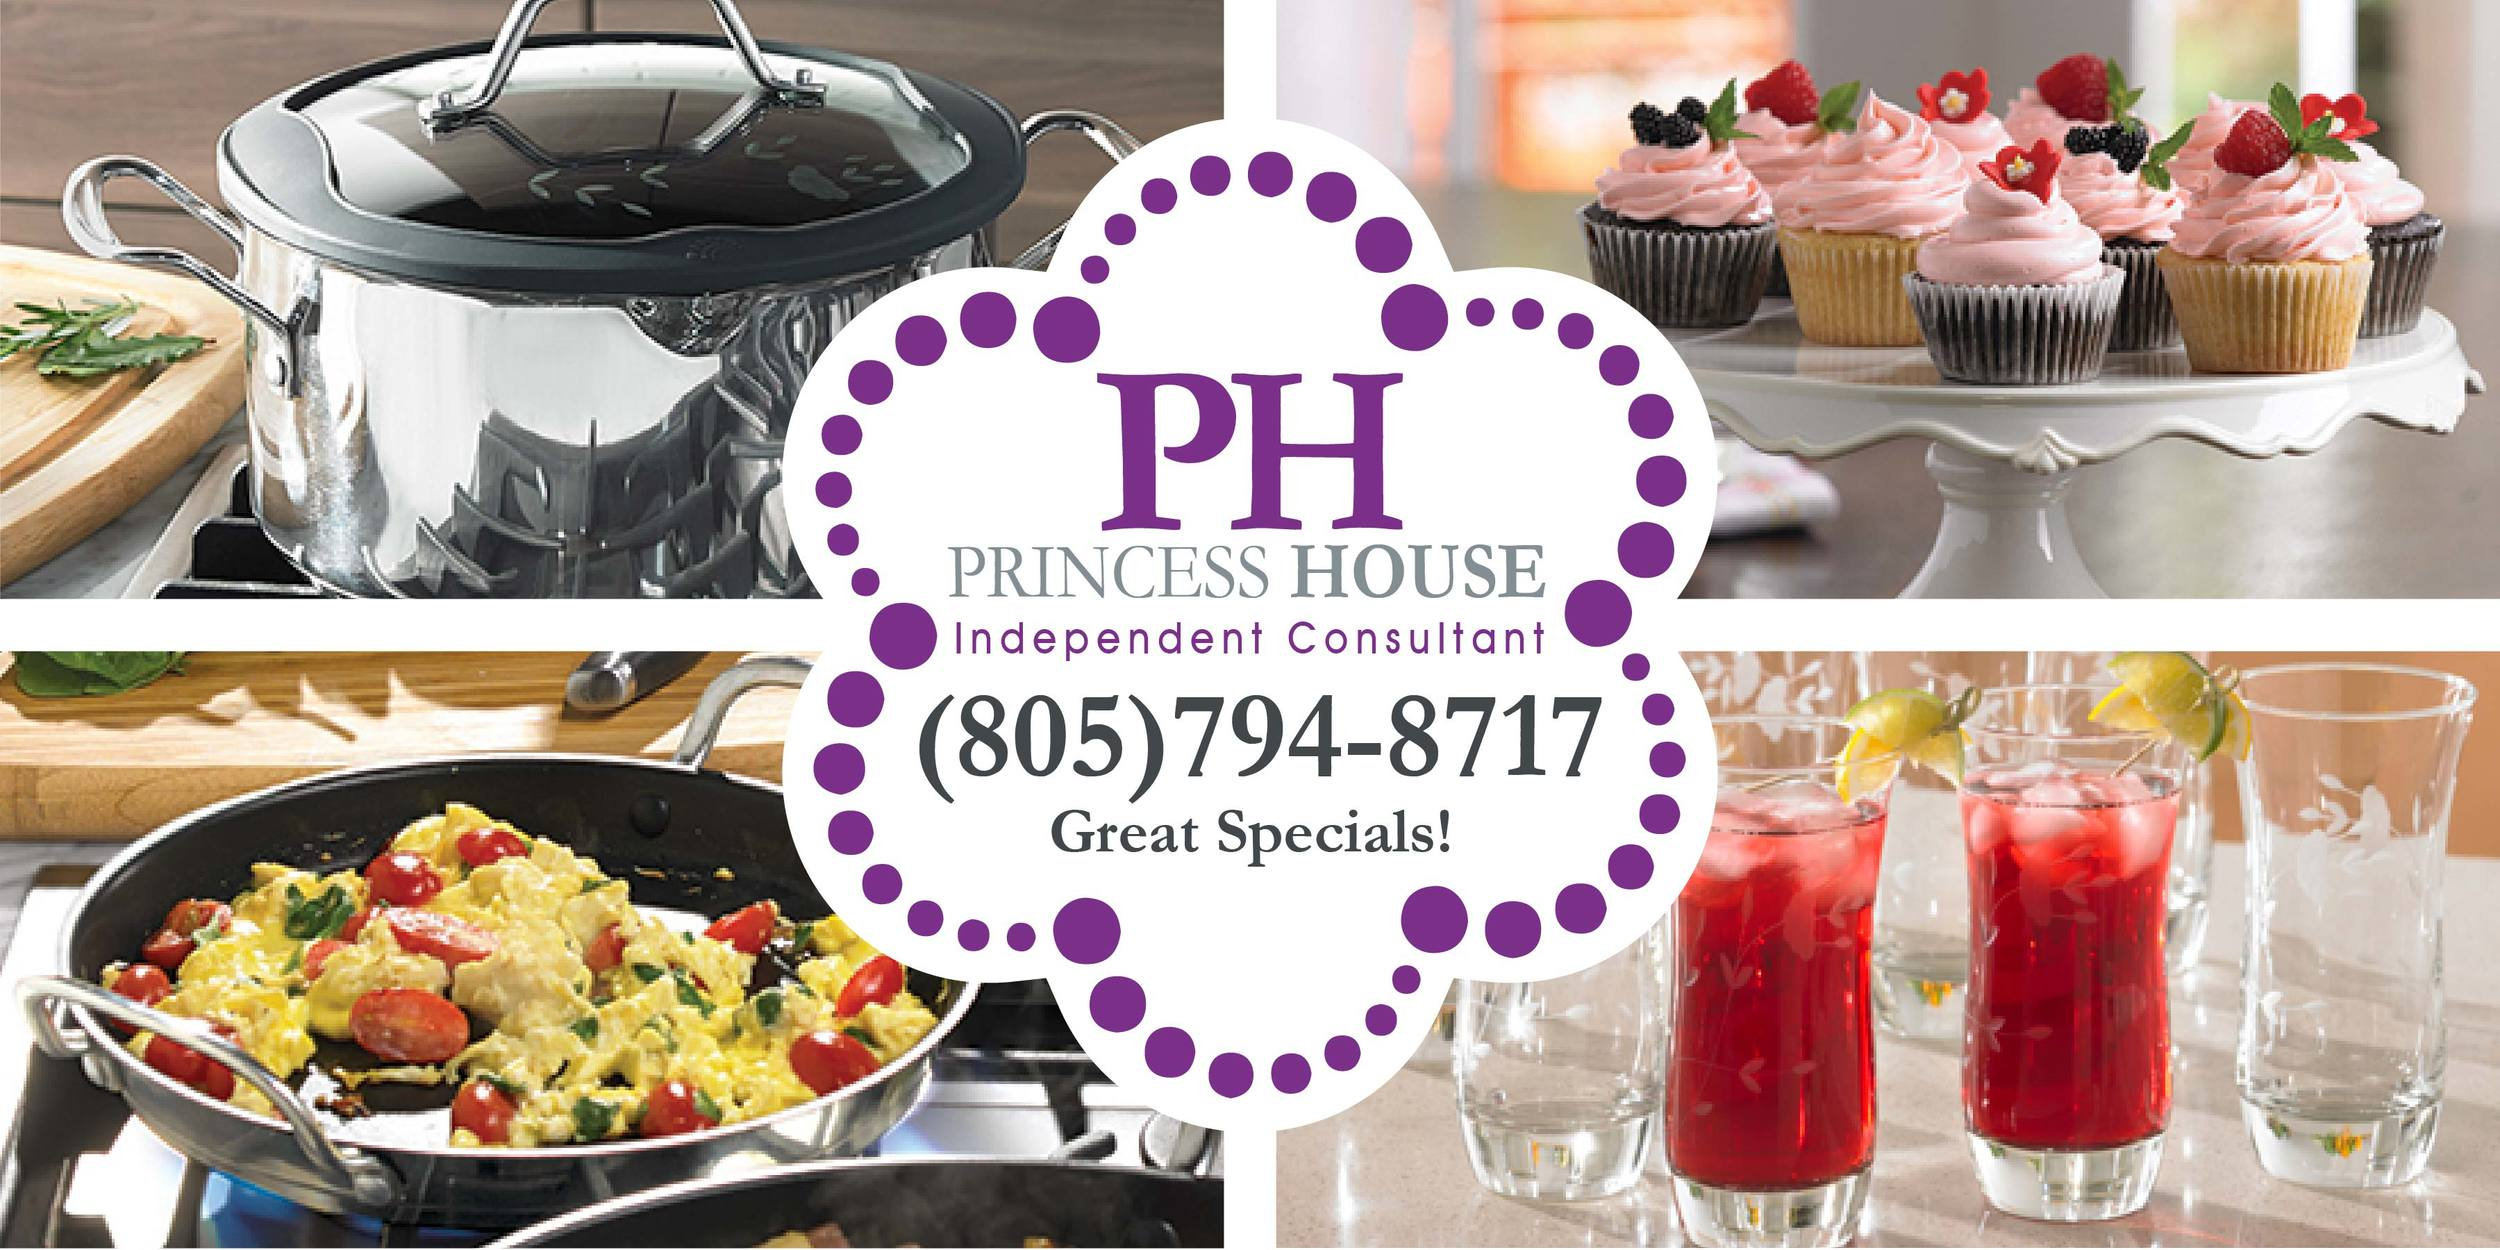 Princess House Magnet-01.jpg